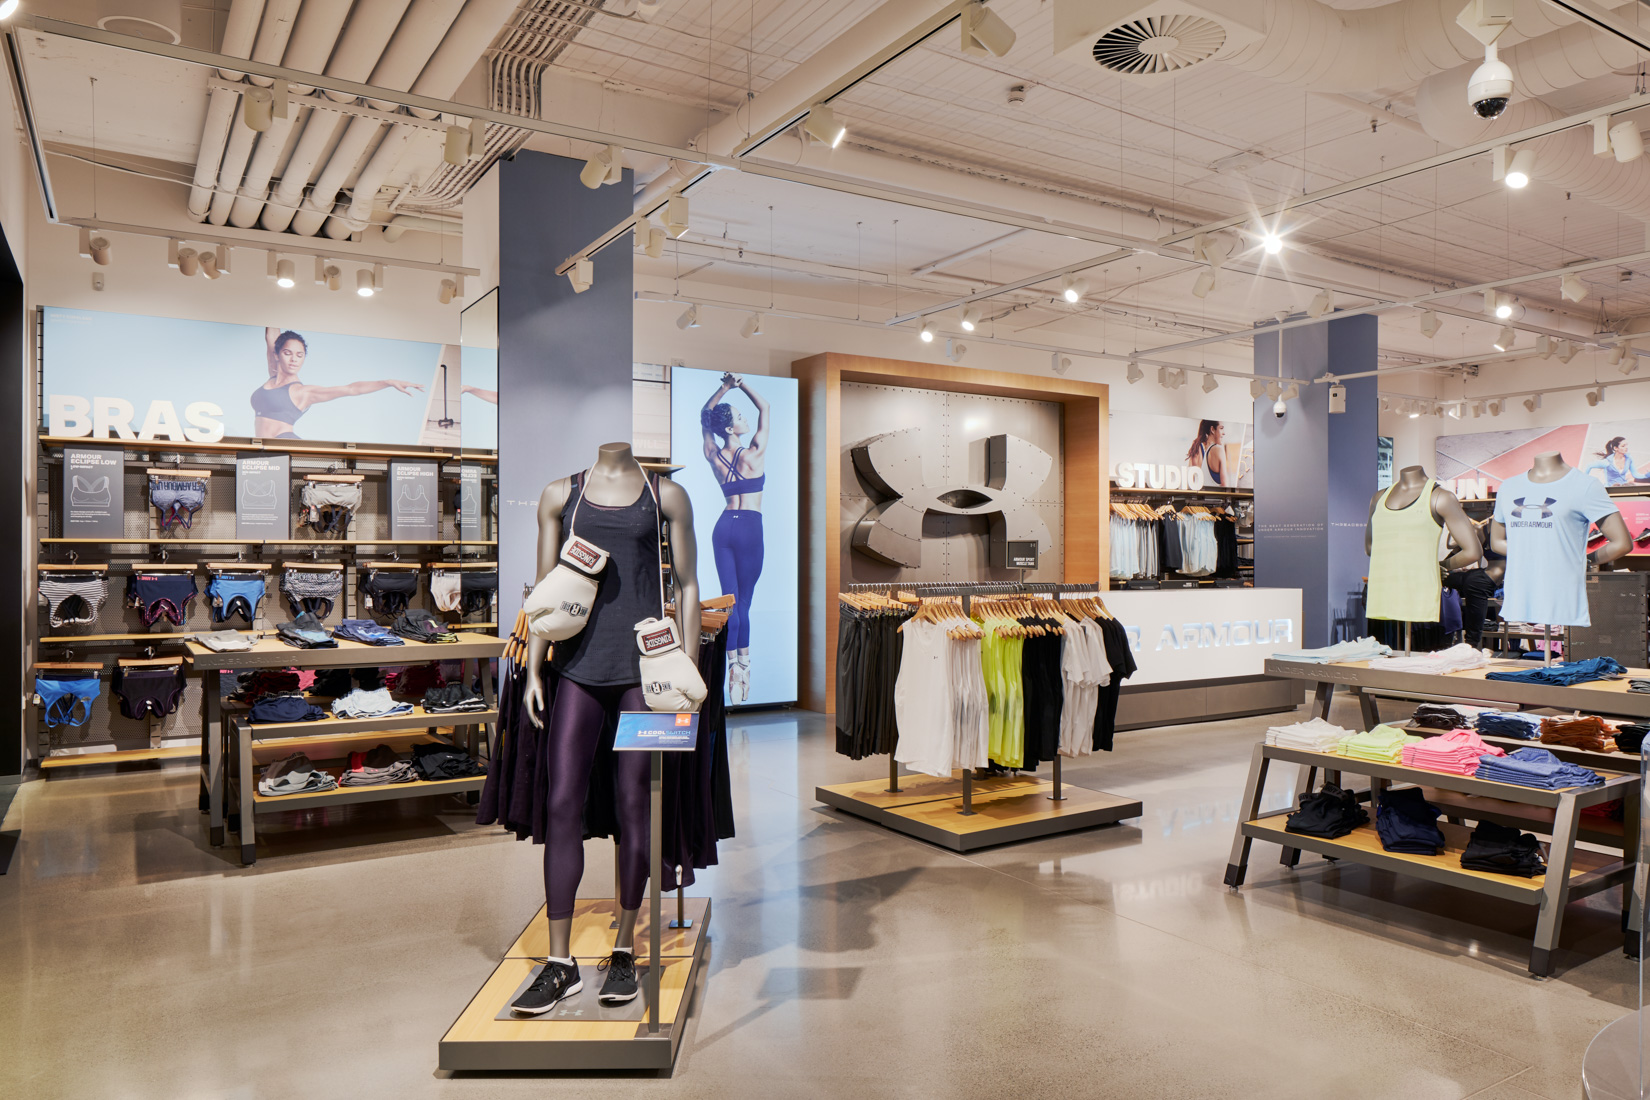 The latest shop fit out for Under Armour in Melbourne's Chadstone shopping centre created by ISM Interiors